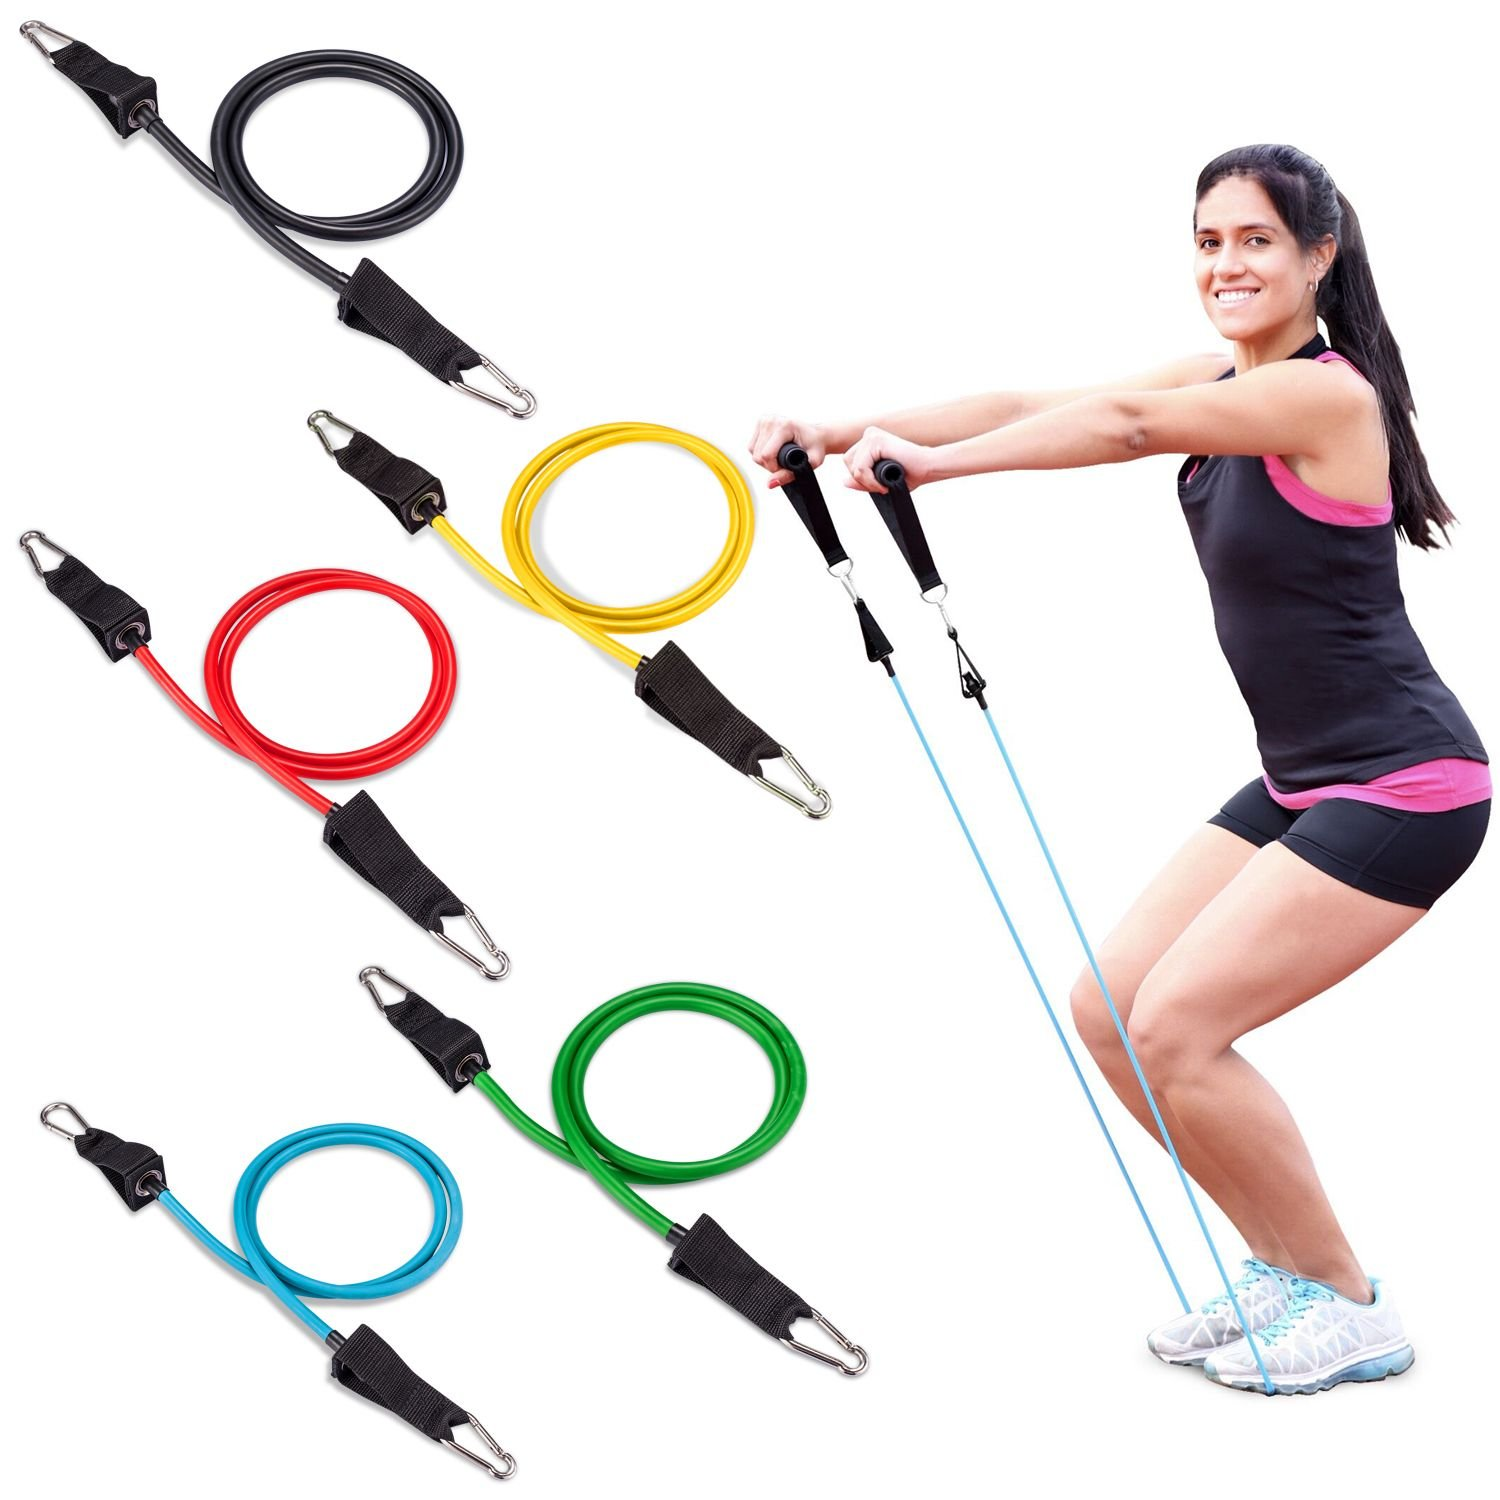 Resistance tube Exercise Bands for Training Featured Image